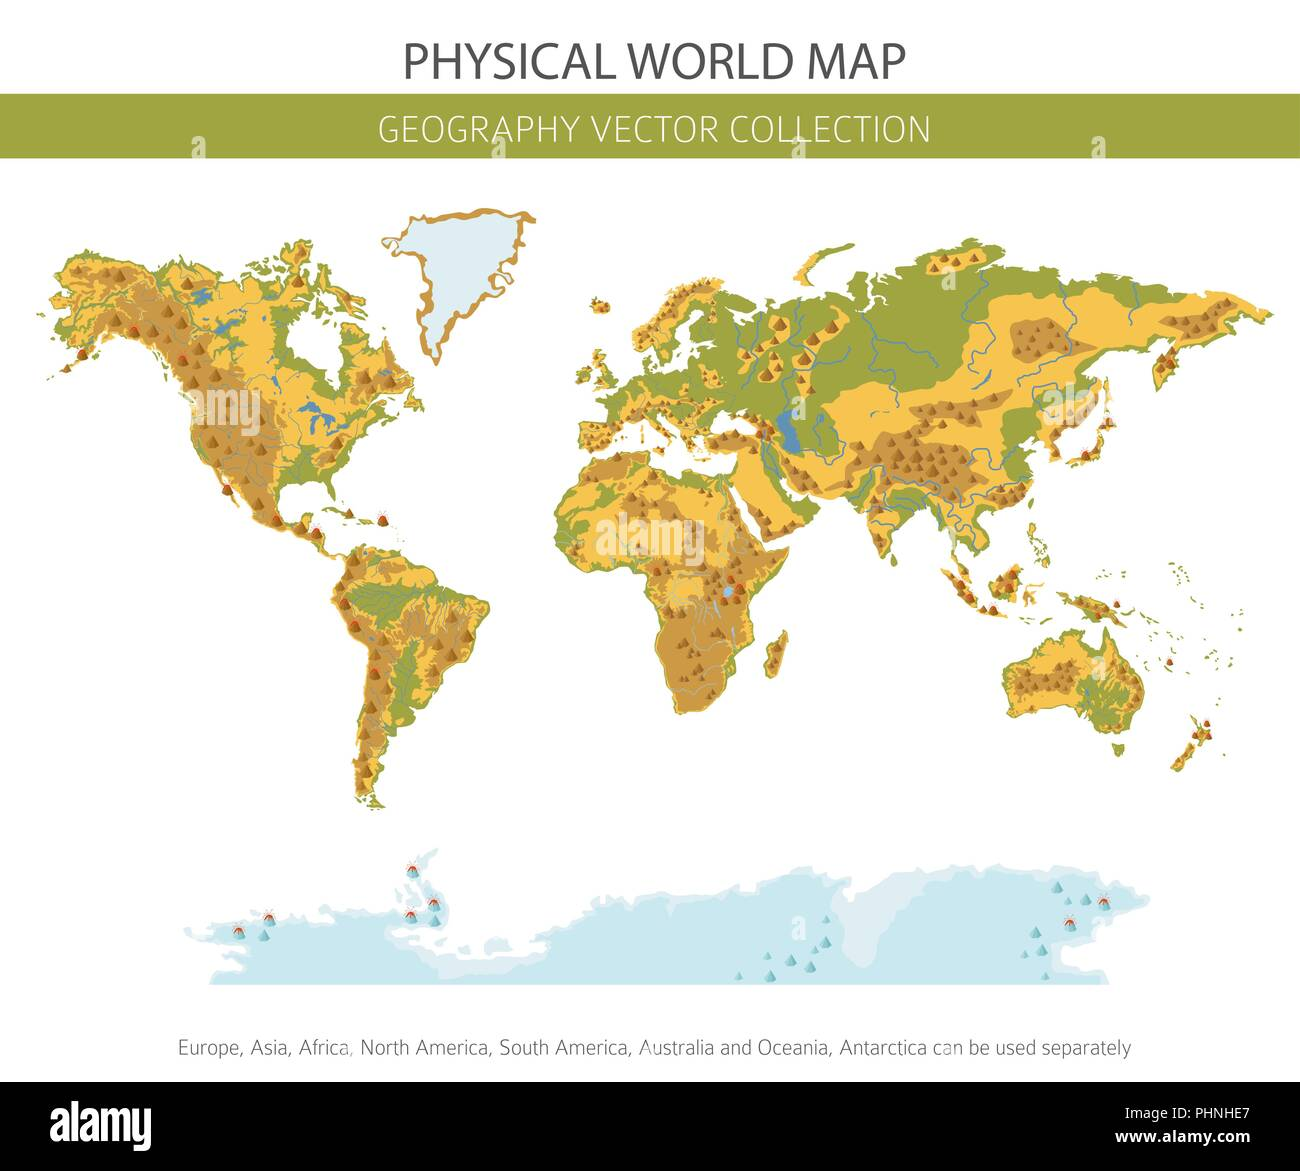 Physical world map elements. Build your own geography info graphic collection. Vector illustration - Stock Vector